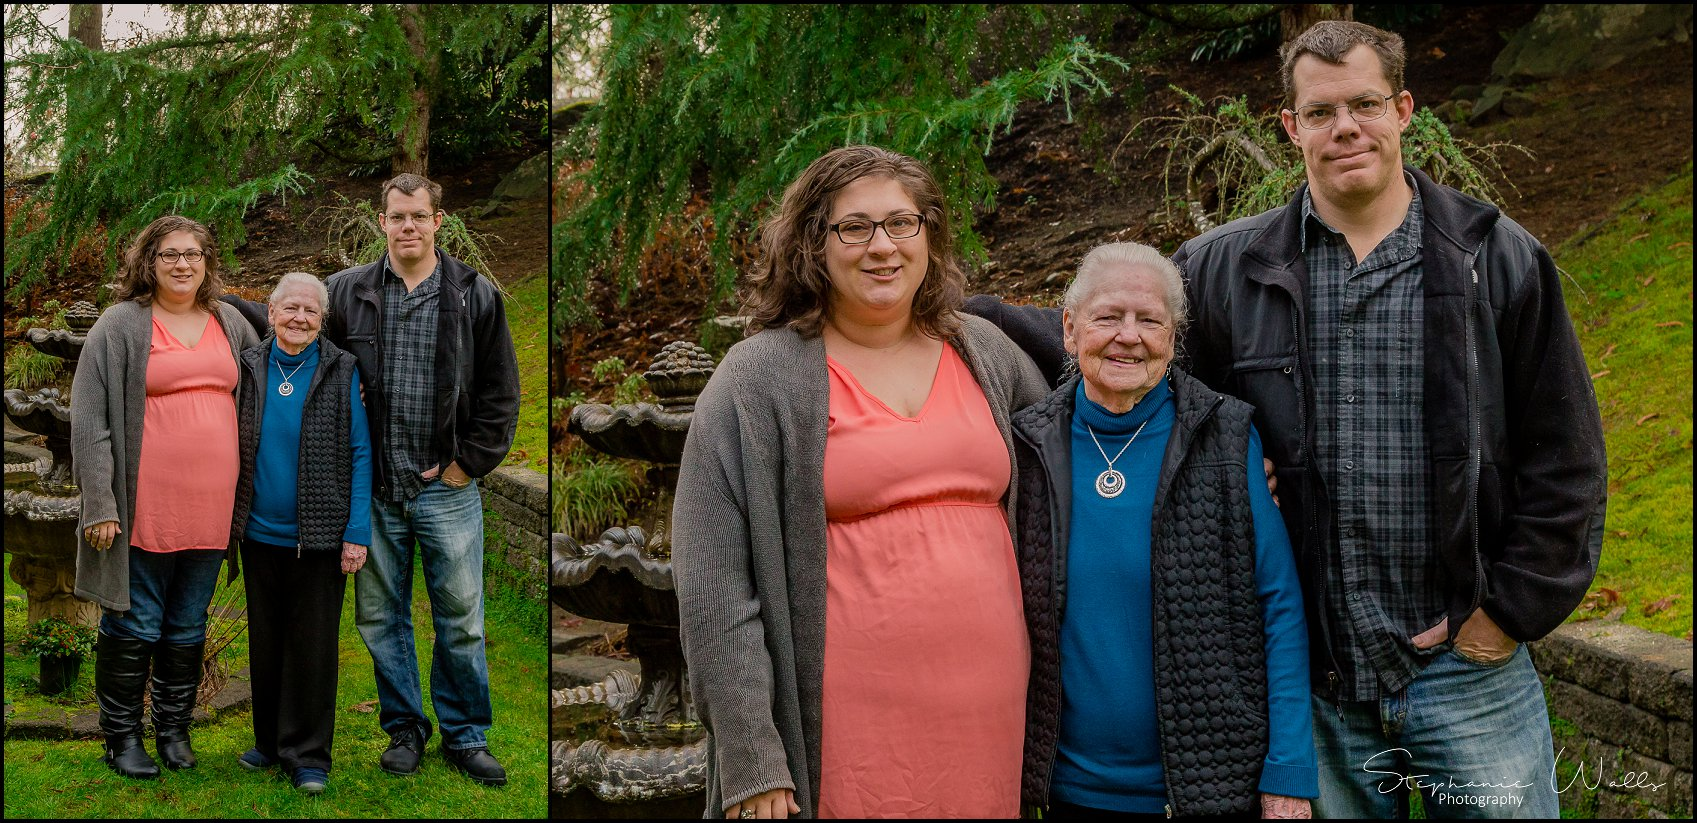 Reiber Family 001 Home For the Holidays | Snohomish, Wa Family Portrait Photographer